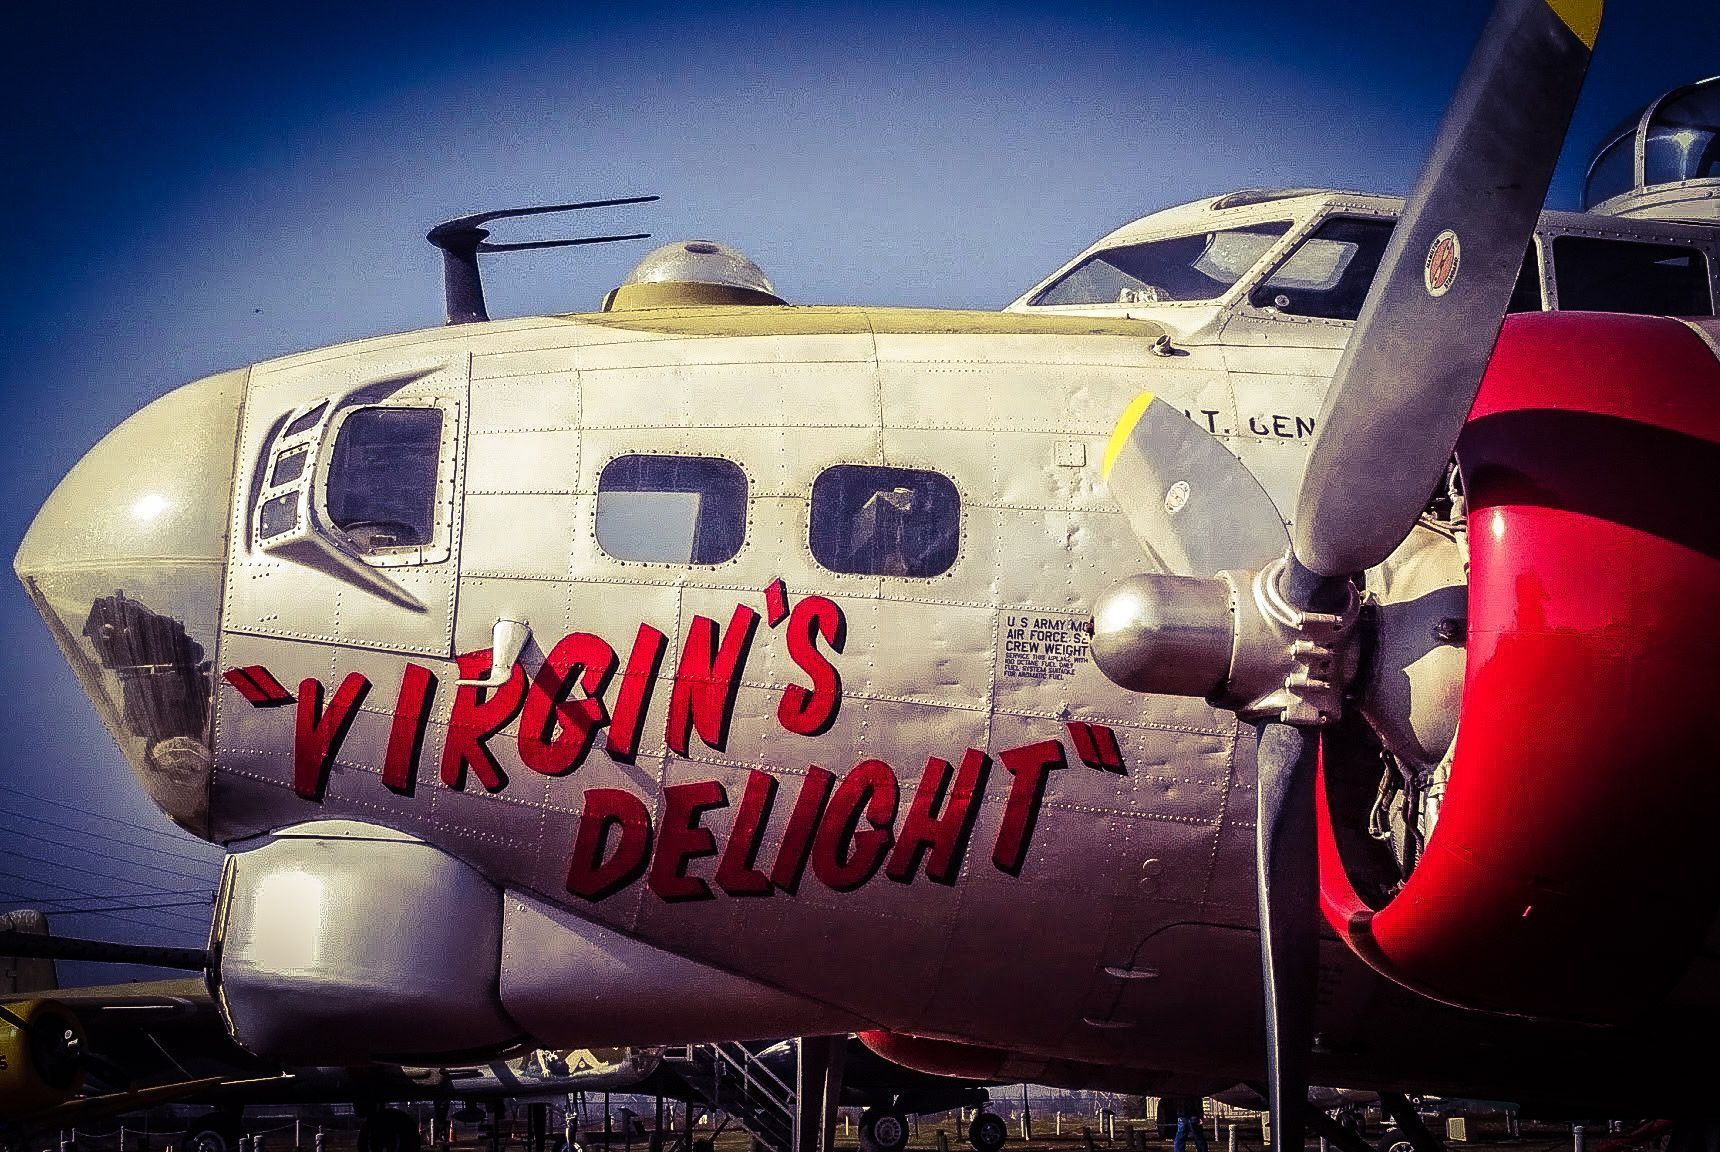 """Boeing B17 Flying Fortress """"Virgin's Delight"""" on display"""